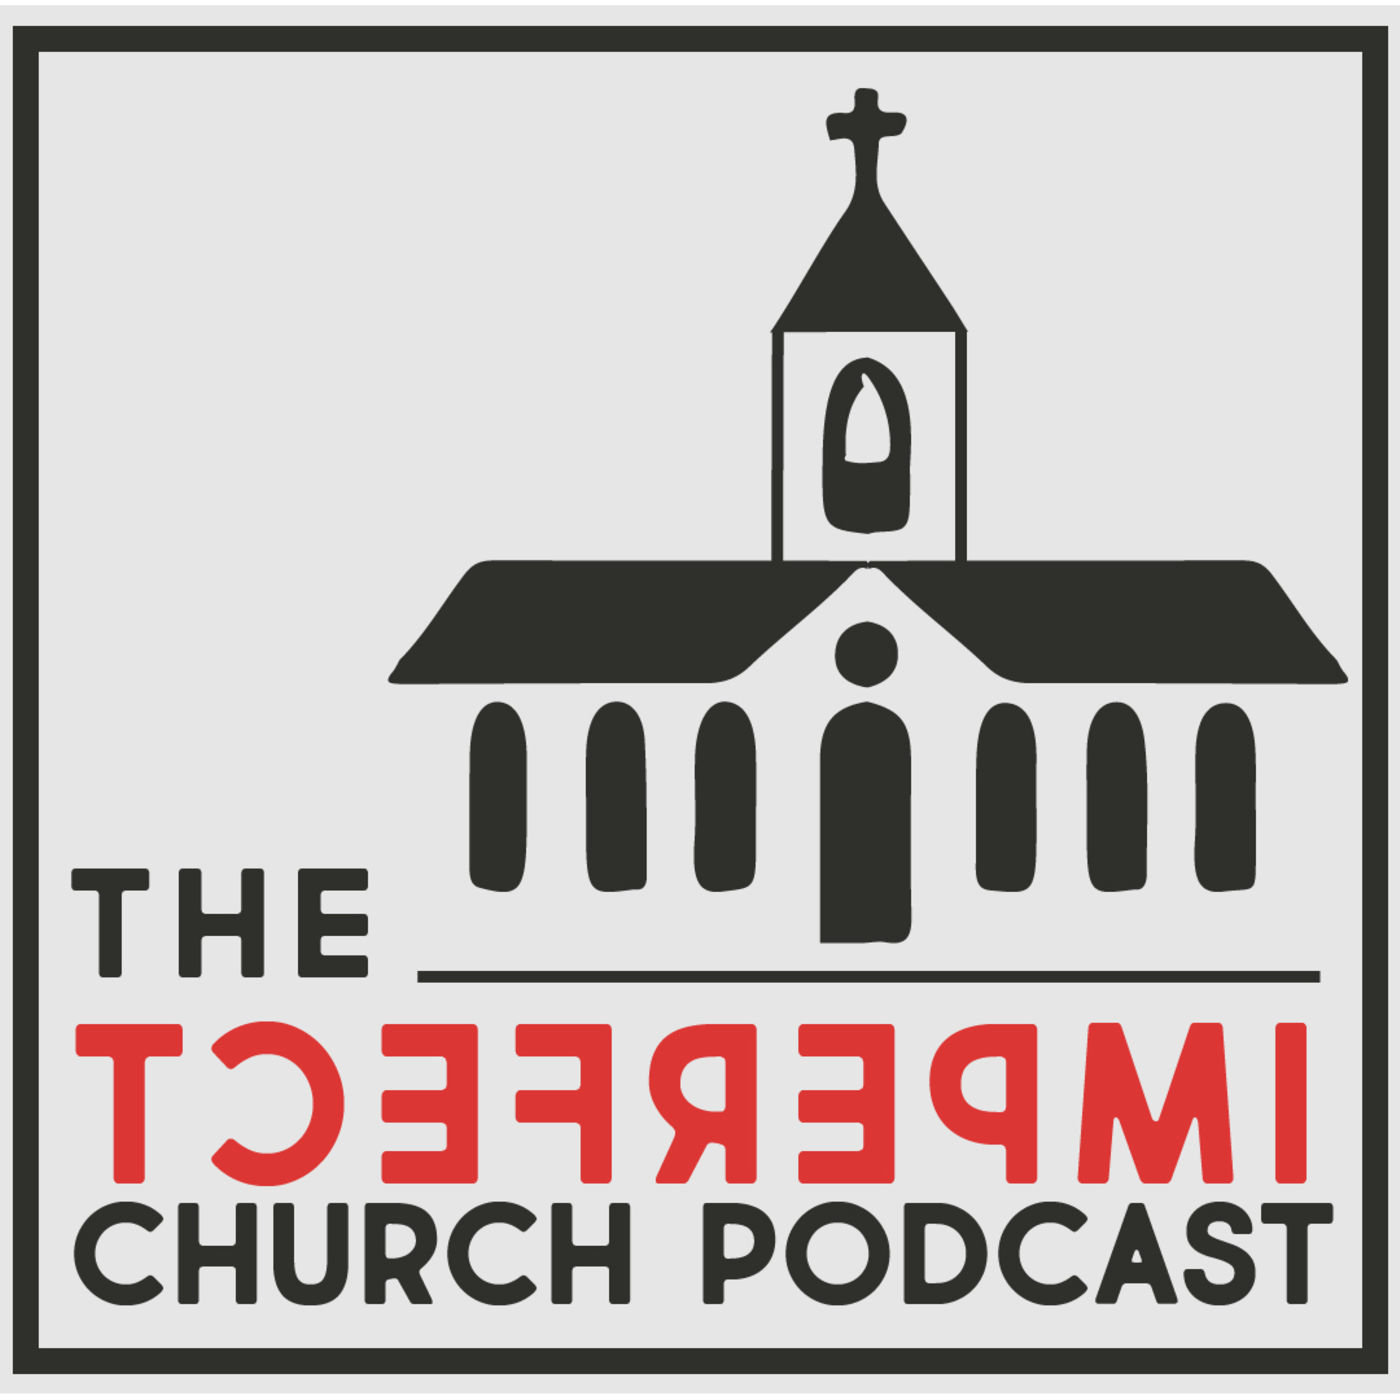 Christianity Podcast Directory - Chartable